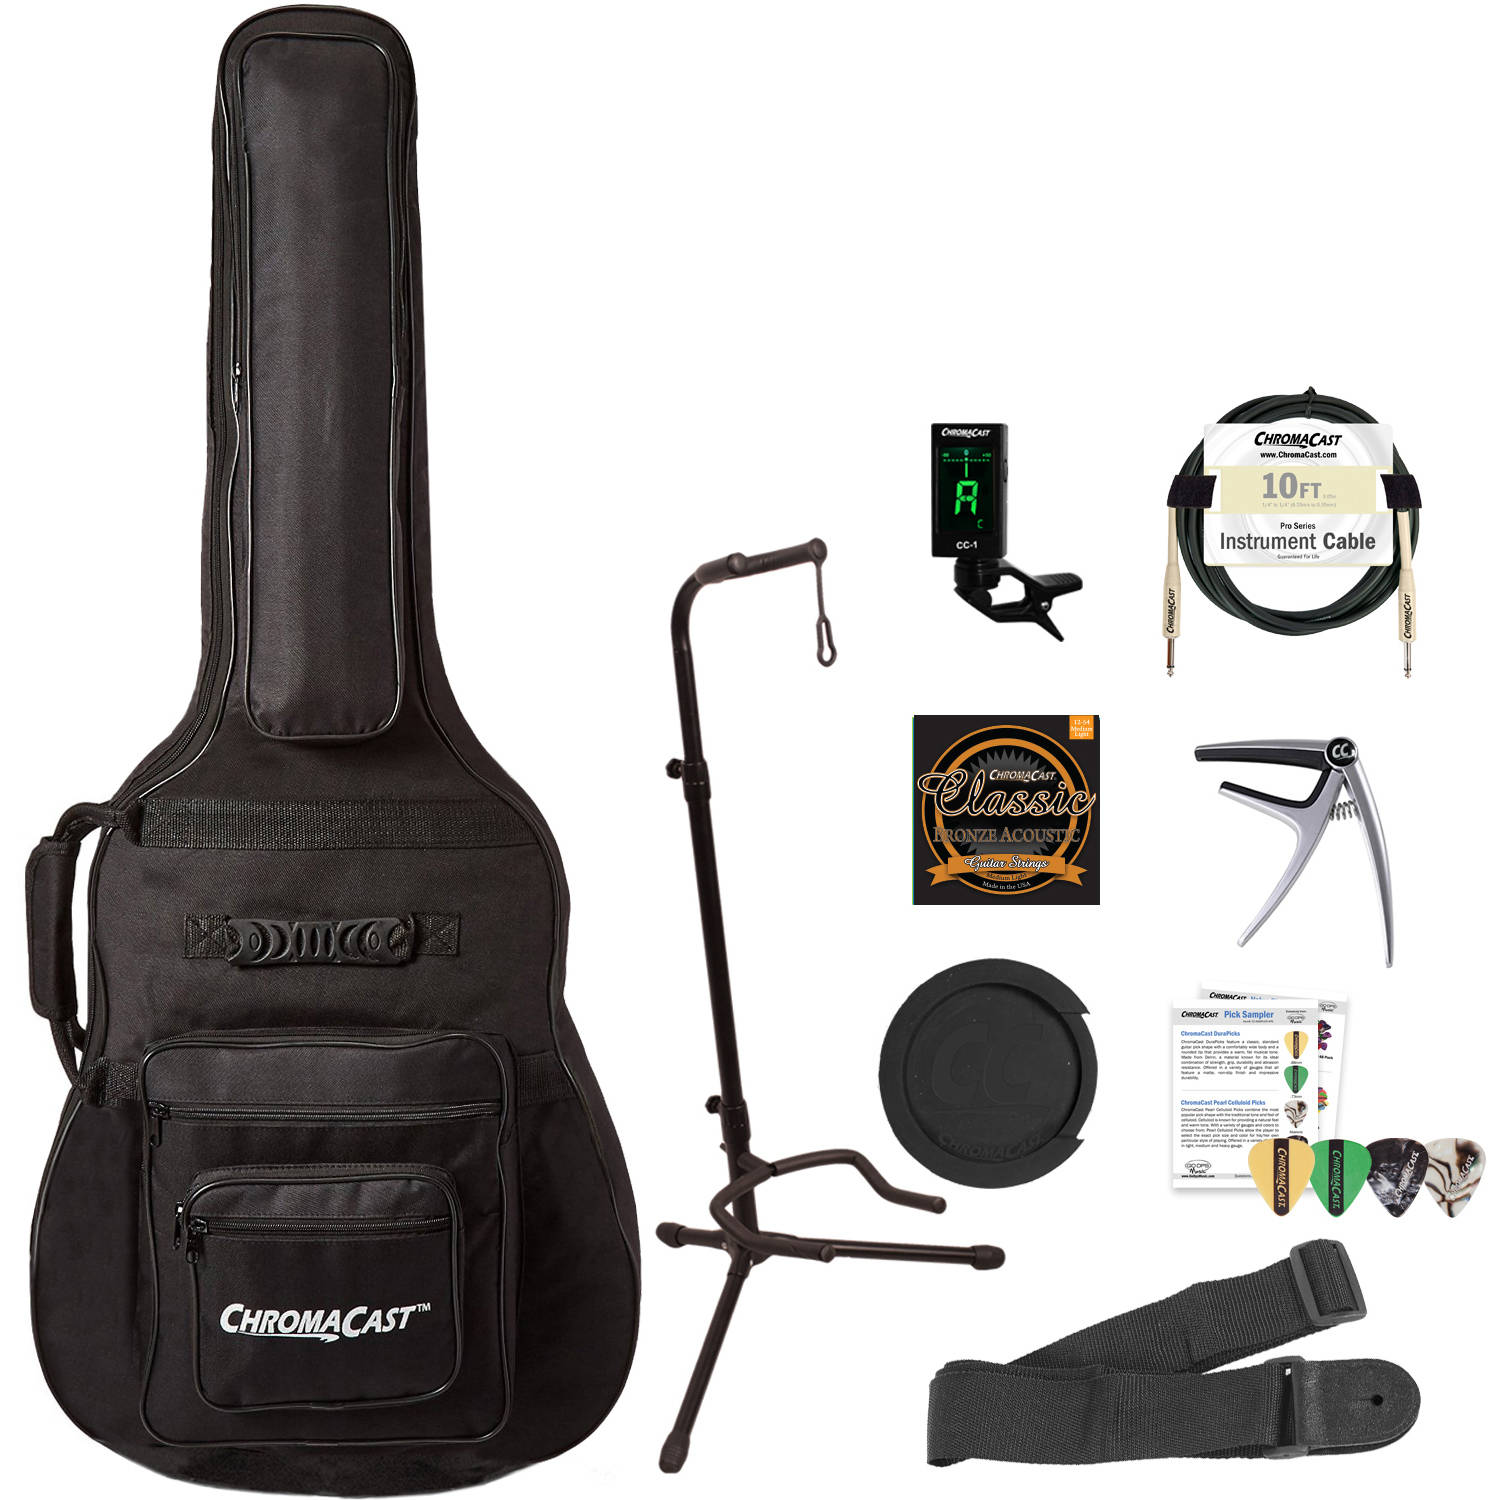 ChromaCast Acoustic Electric Guitar Performer's Pack with Padded Guitar Case, Stand, Tuner, Cable, Strap, Capo, Sound Hole Mute, Strings & Picks